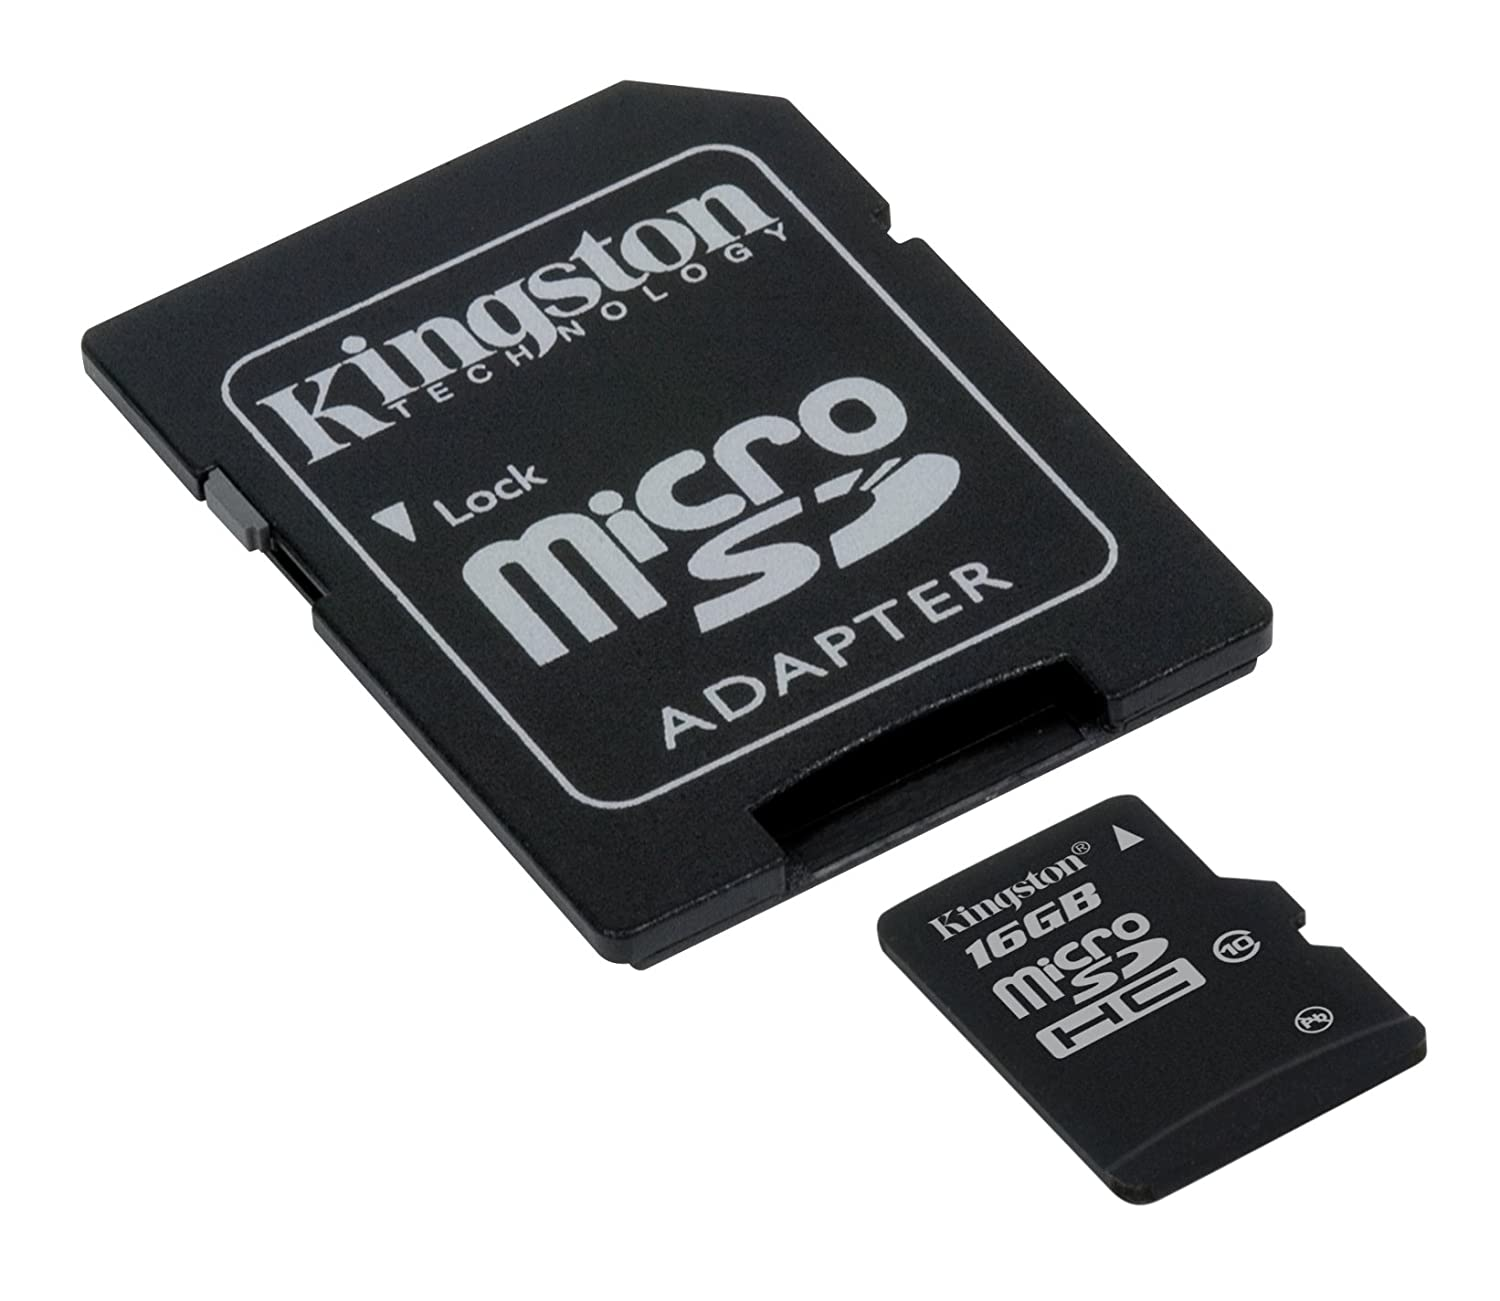 Kingston SDC10/16GB - Tarjeta Micro SDHC de 16 GB, Clase 10, con Adaptador